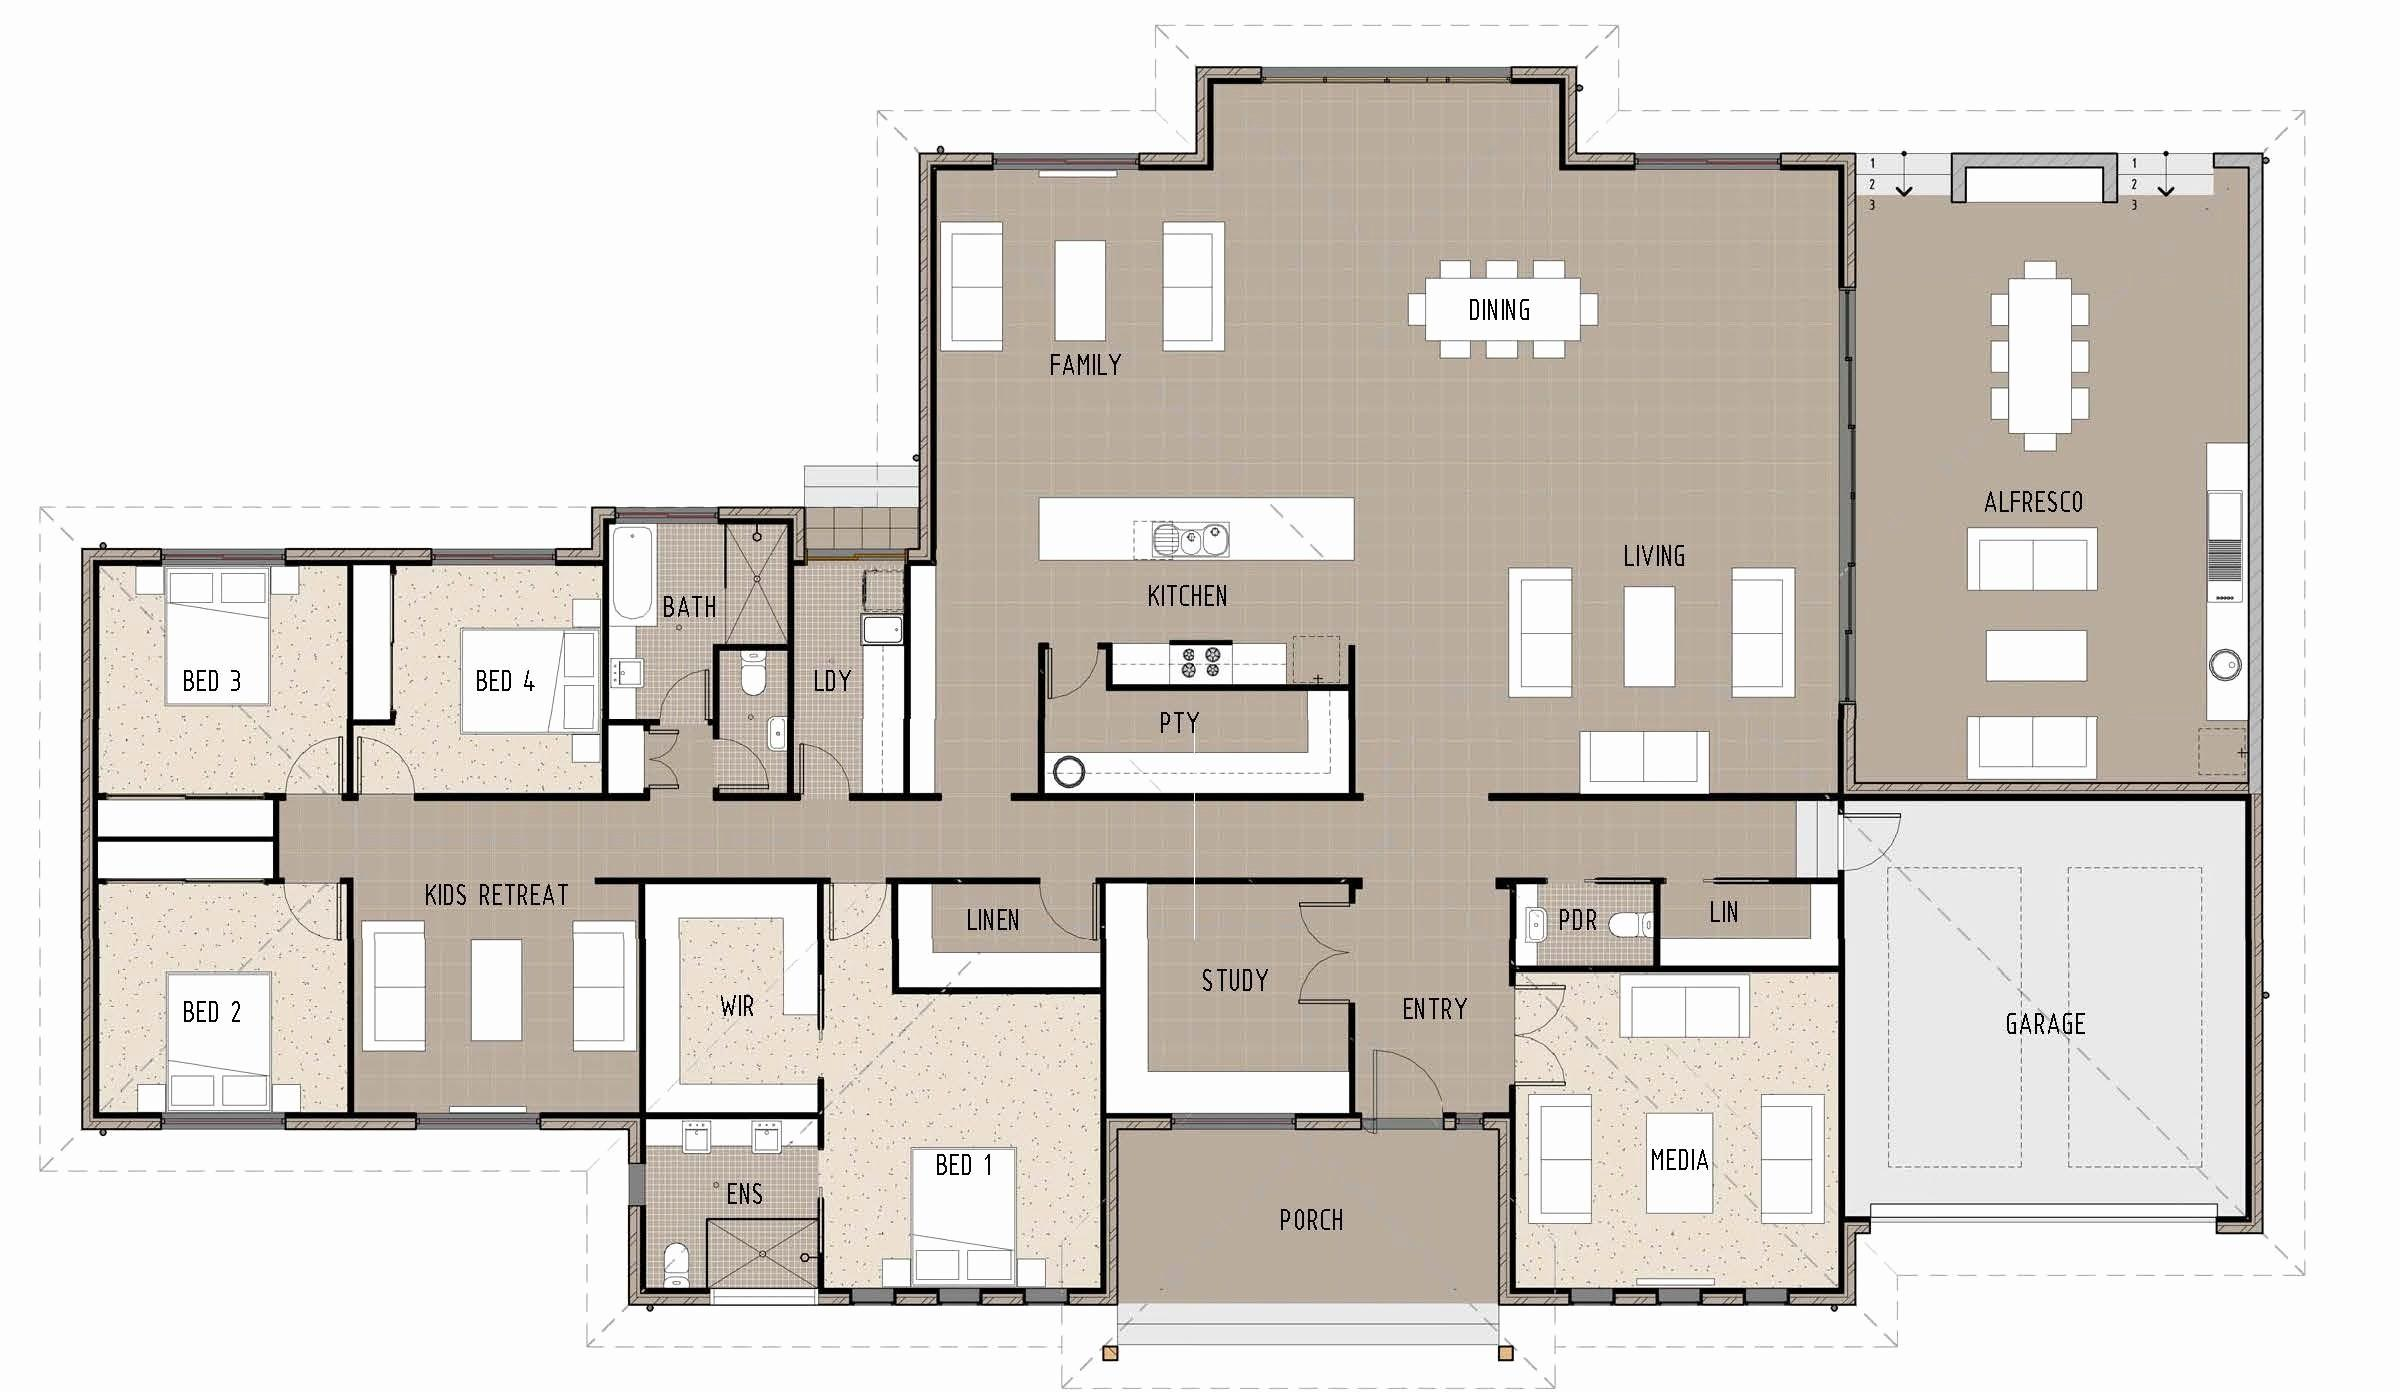 Home Design Energy Efficiency Floor Plan